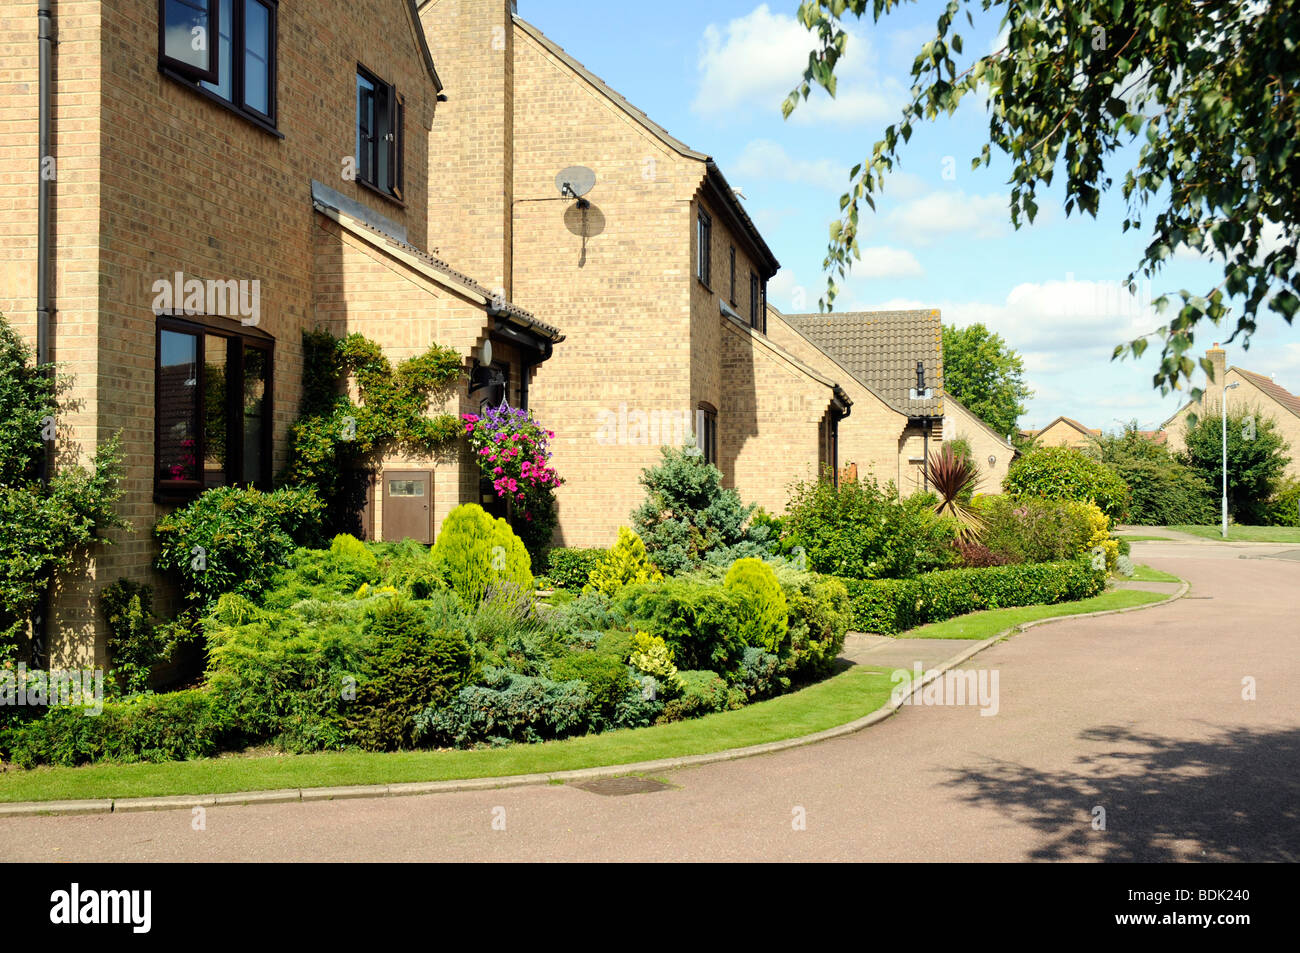 Detached houses in quiet cul-de-sac in English market town of Oundle, Northamptonshire. - Stock Image